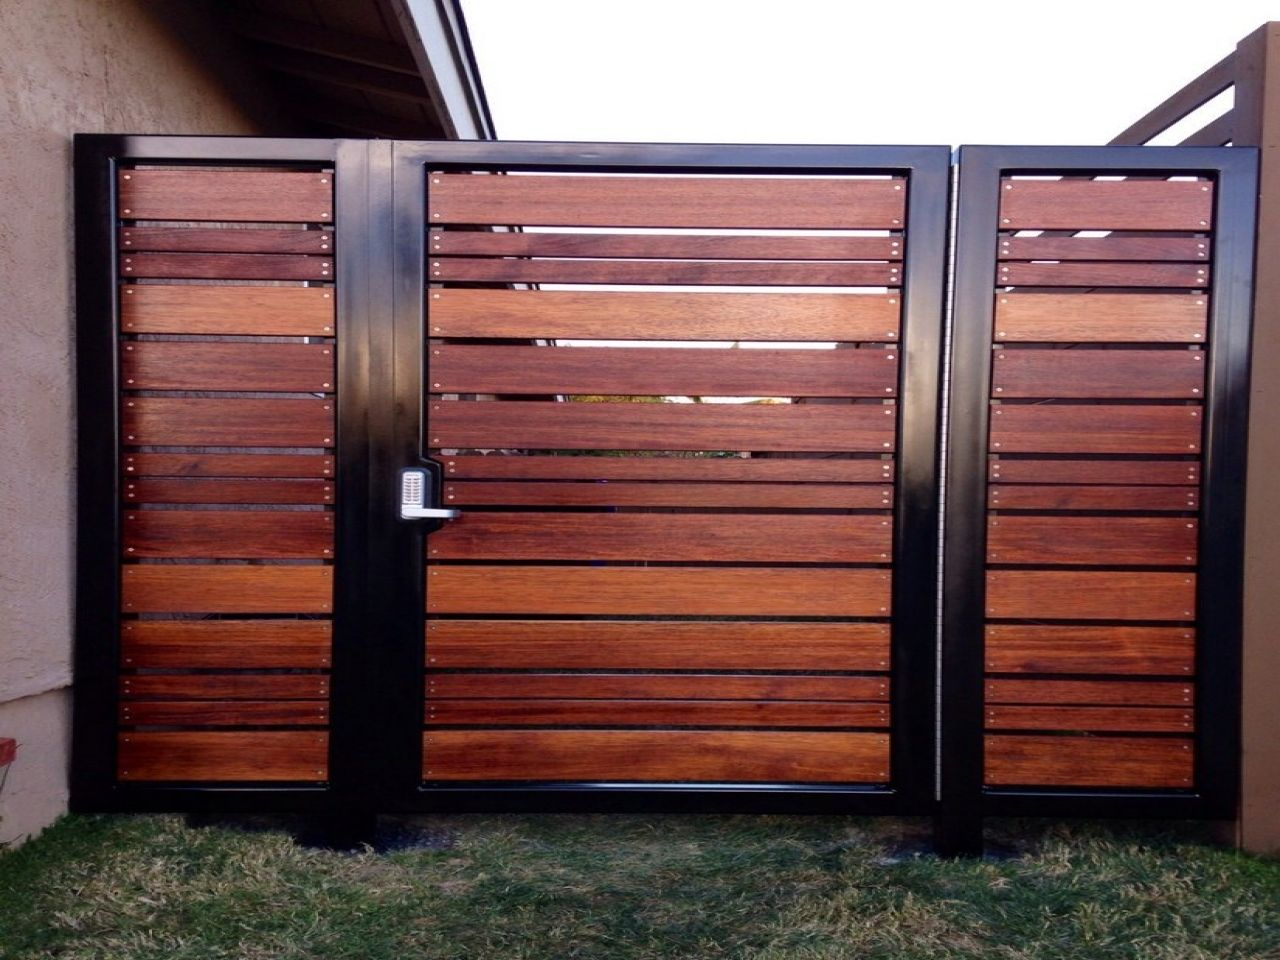 Fences: Modern Wooden Fences And Gates Patio Fence Designs Modern  Horizontal Gate Wood Slat Makeovers